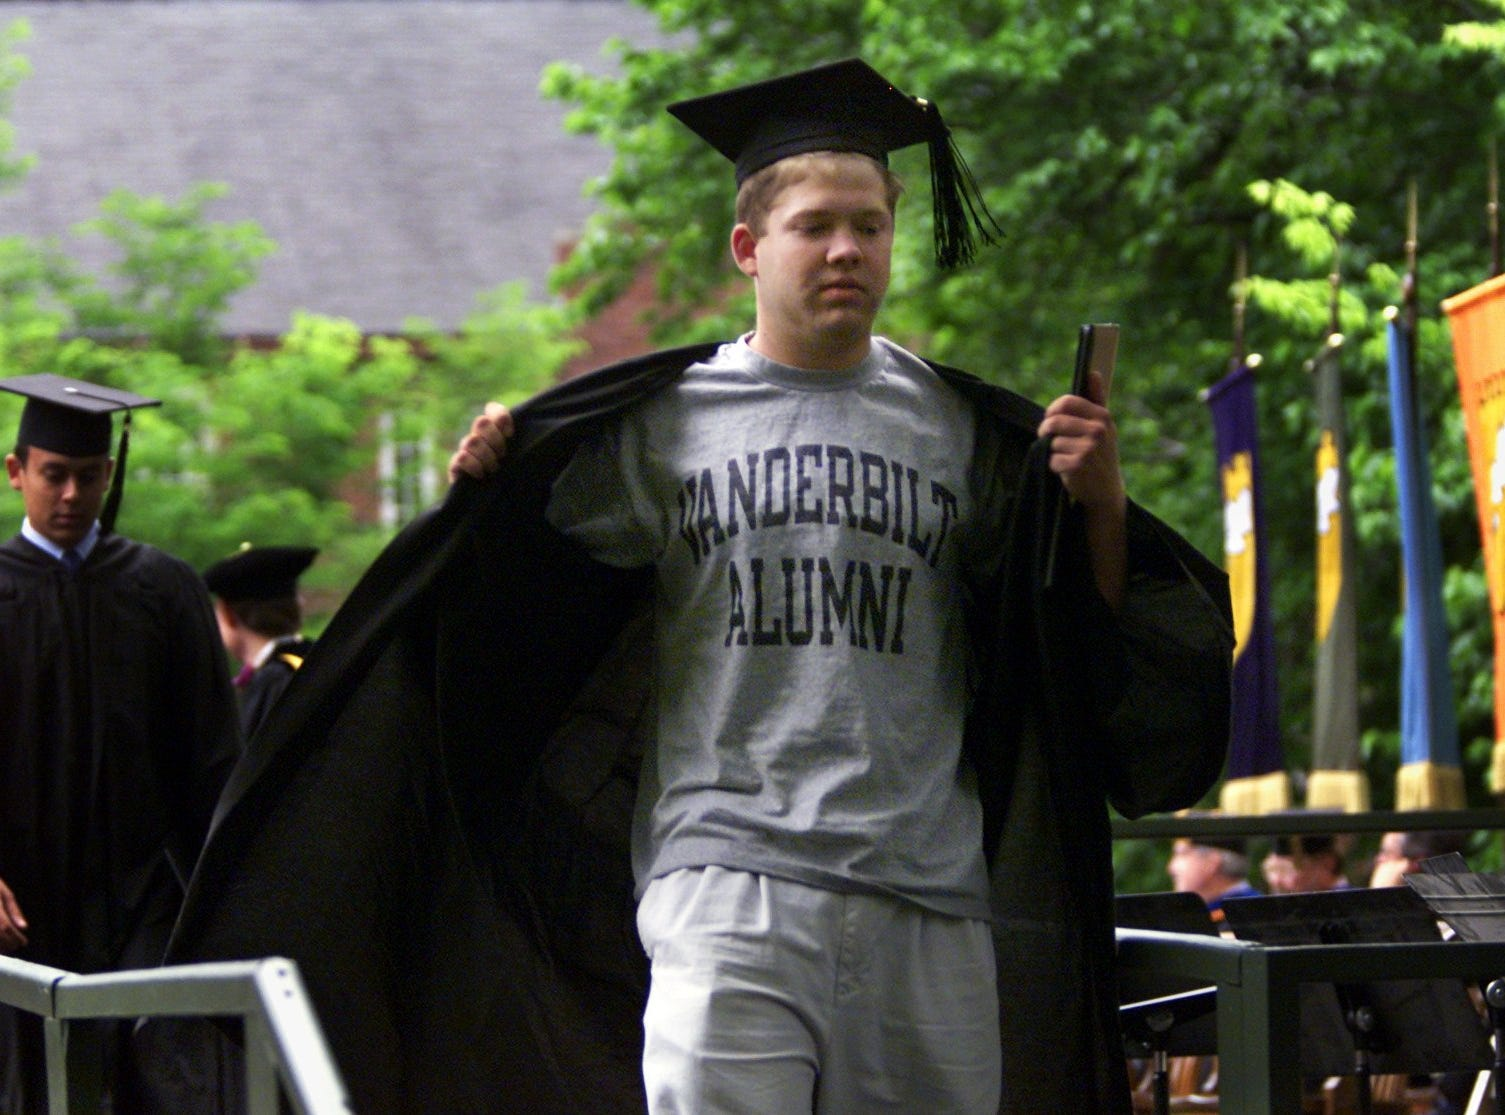 David Carlson opens his graduation robe to flash a Vanderbilt Alumni T-shirt as he crosses the stage with his diploma at Vanderbilt's 2002 commencement. Carlson, from Houston, Texas, received a Bachelor of Arts in interdisciplinary studies: communications.